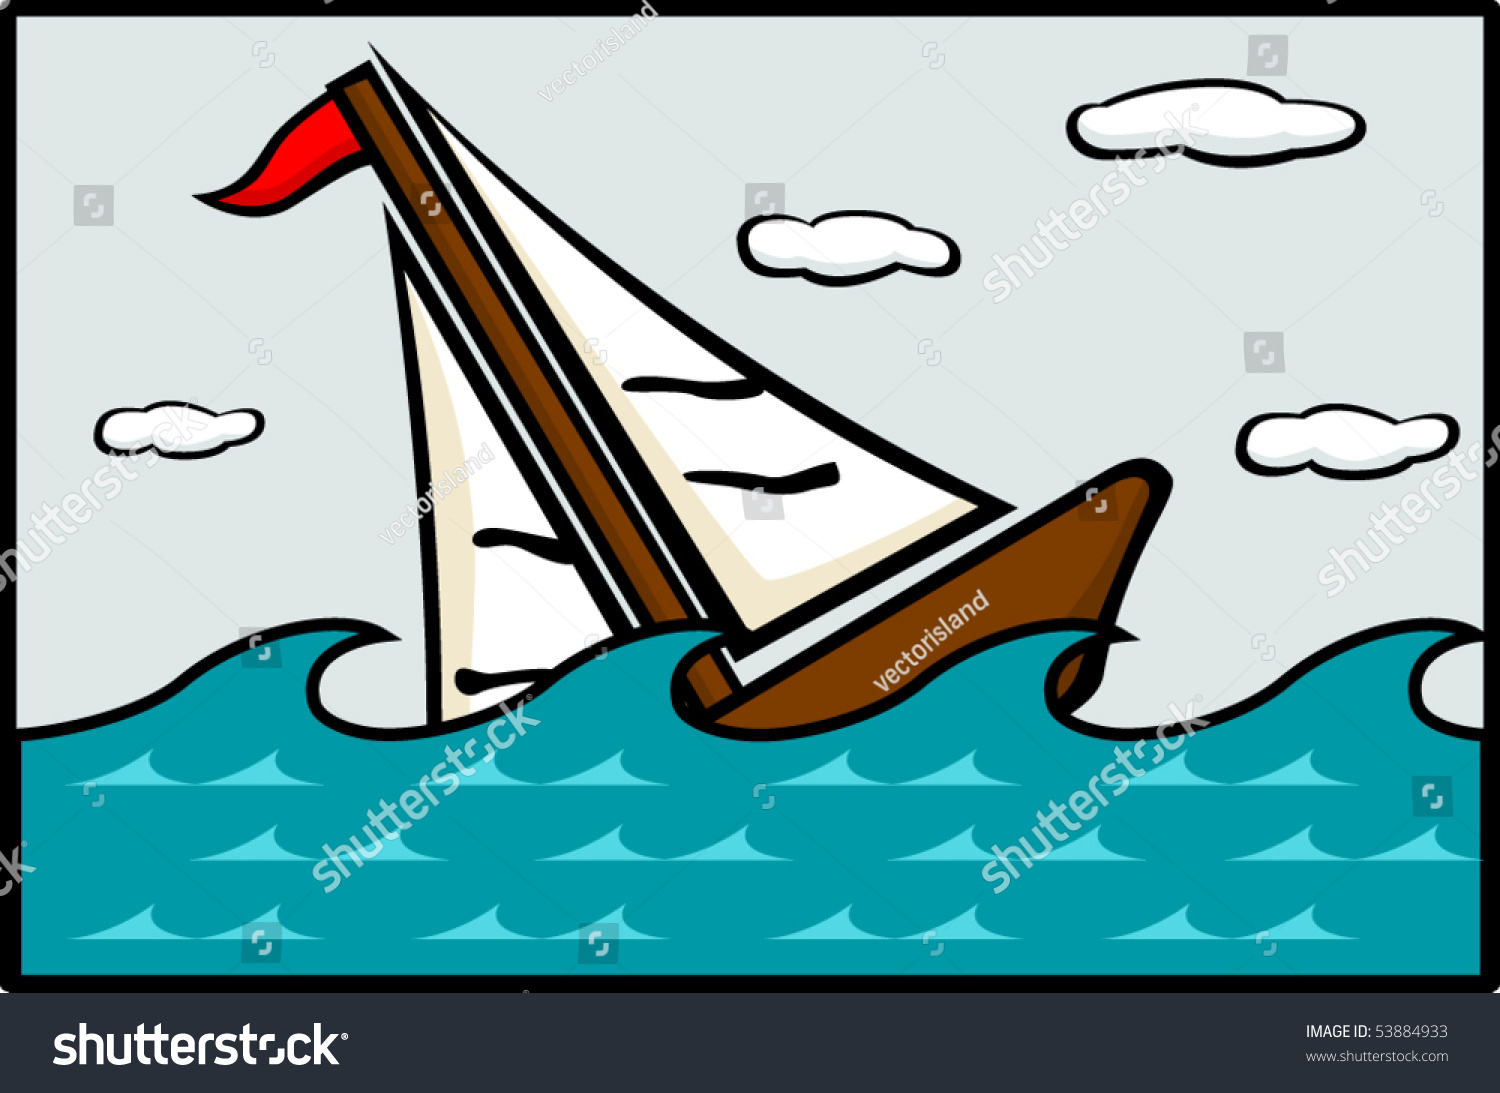 Sinking Ship Stock Vector